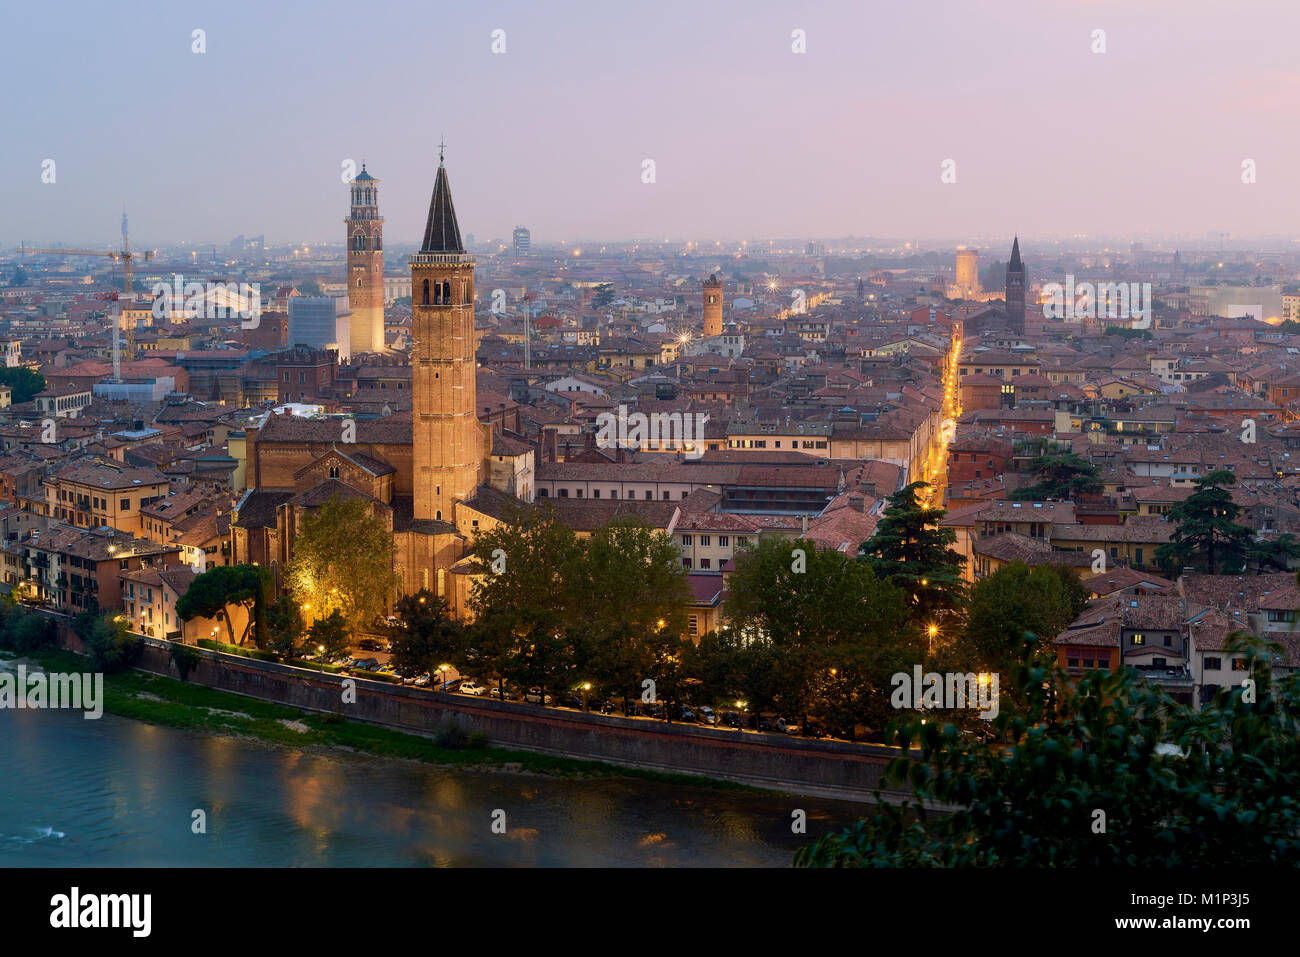 Cityscape at dusk seen from Castel San Pietro, Verona, Veneto, Italy, Europe - Stock Image